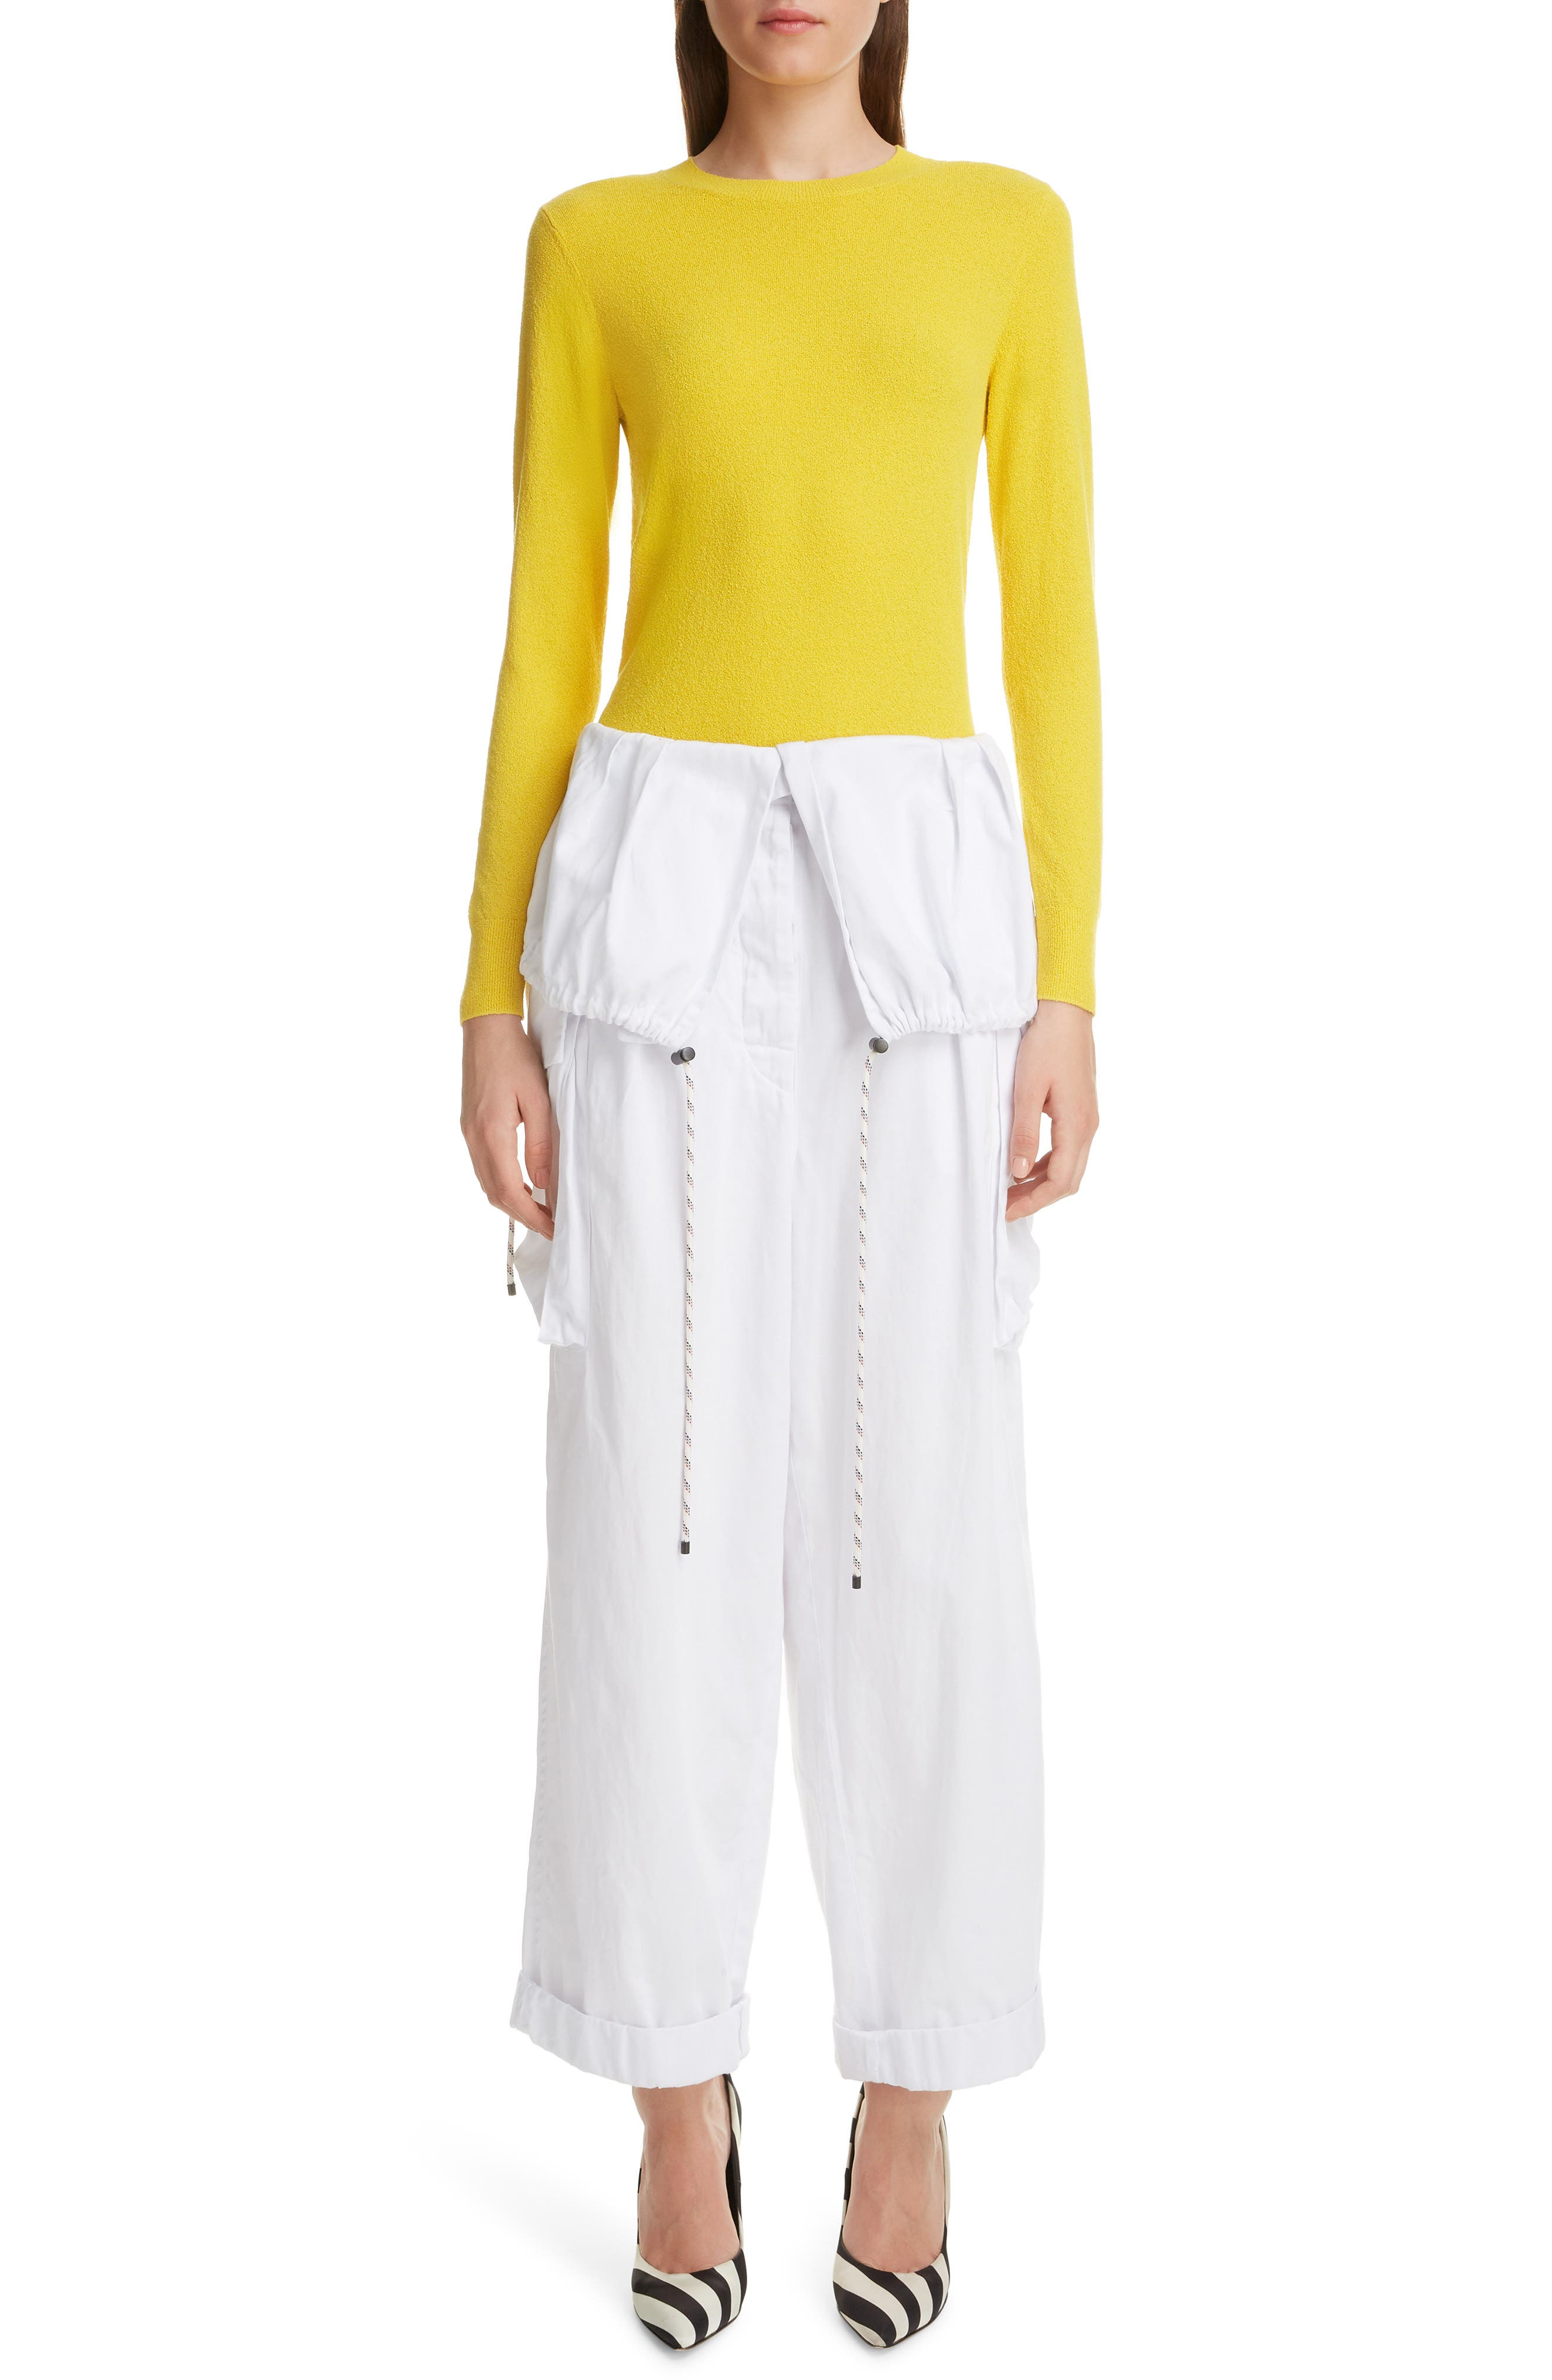 DRIES VAN NOTEN, Nadine Sweater, Alternate thumbnail 6, color, YELLOW